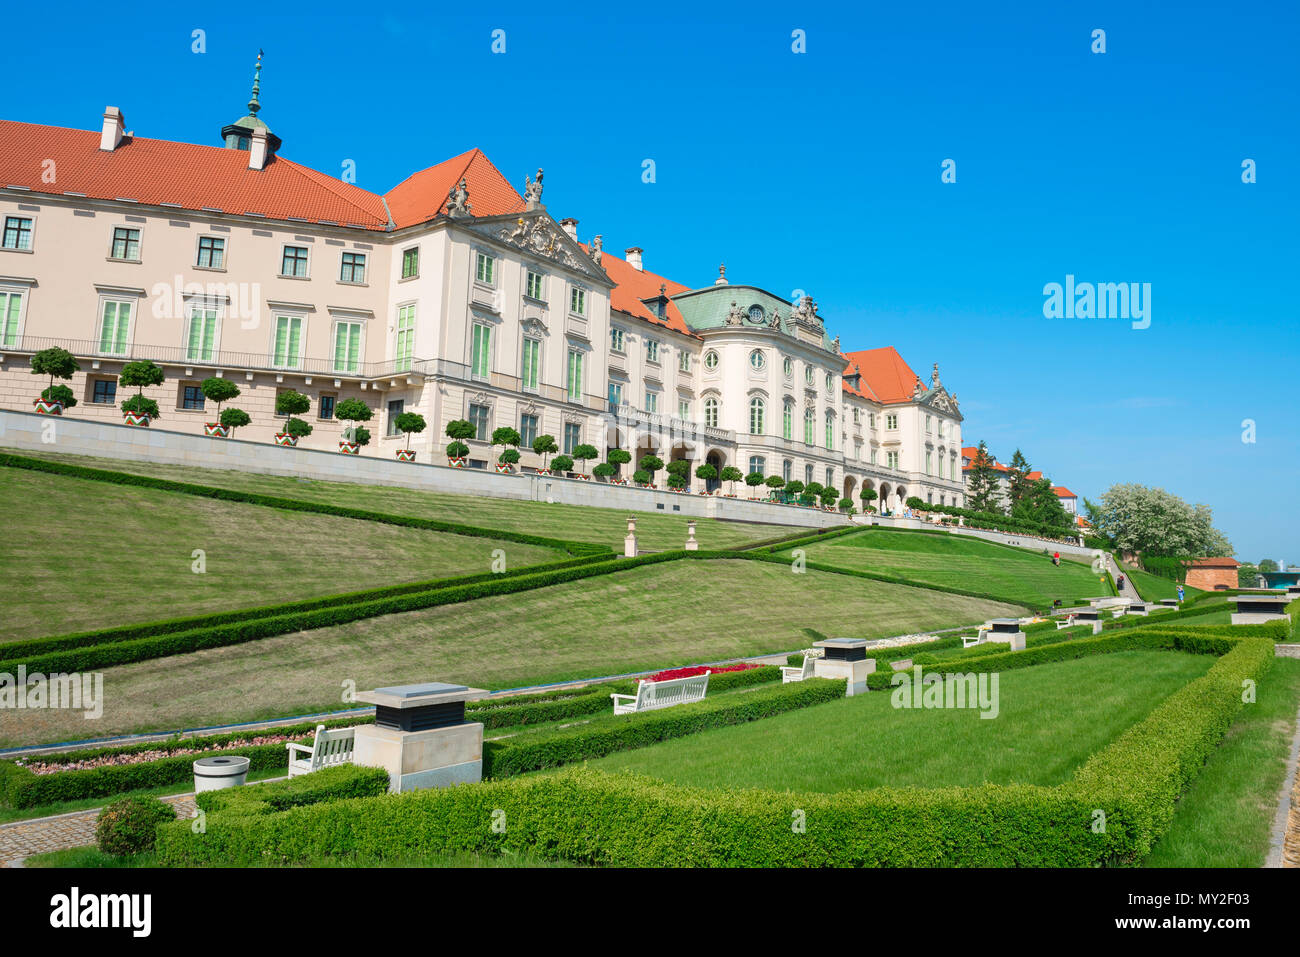 Royal Castle Warsaw, view of landscaped garden at the rear of the Royal Castle in Warsaw, Poland. - Stock Image